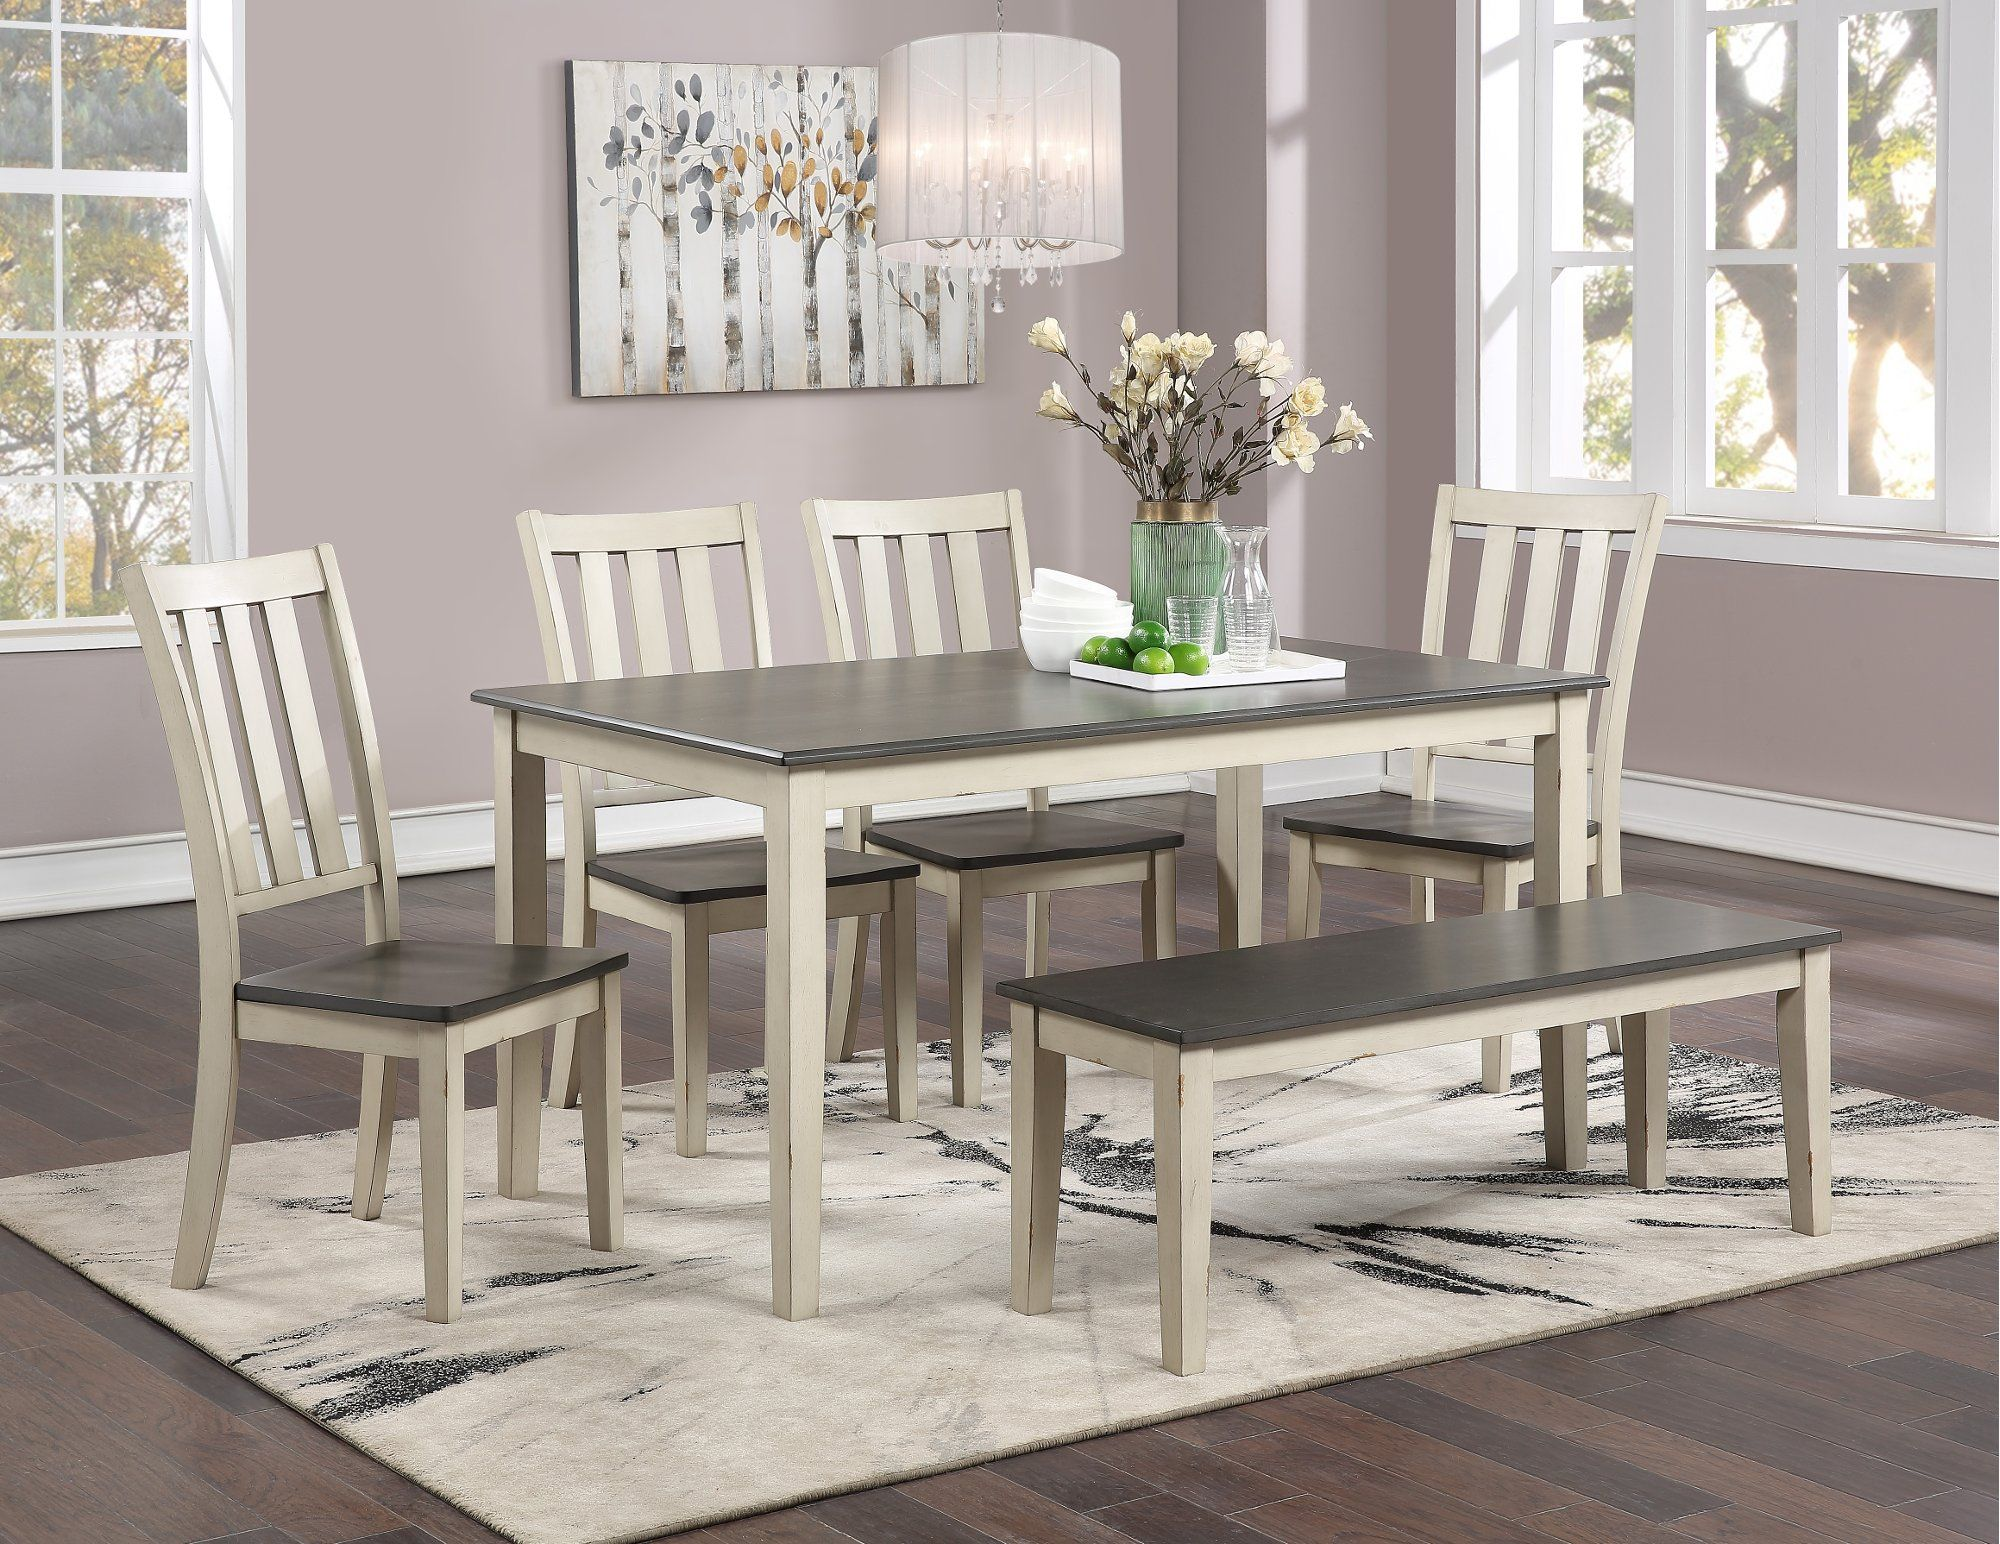 Farmhouse White And Gray 6 Piece Dining Room Set Remy Rc Willey Furniture Store In 2020 Brown Dining Room Solid Wood Dining Room Solid Wood Dining Room Set #rc #willey #living #room #sets